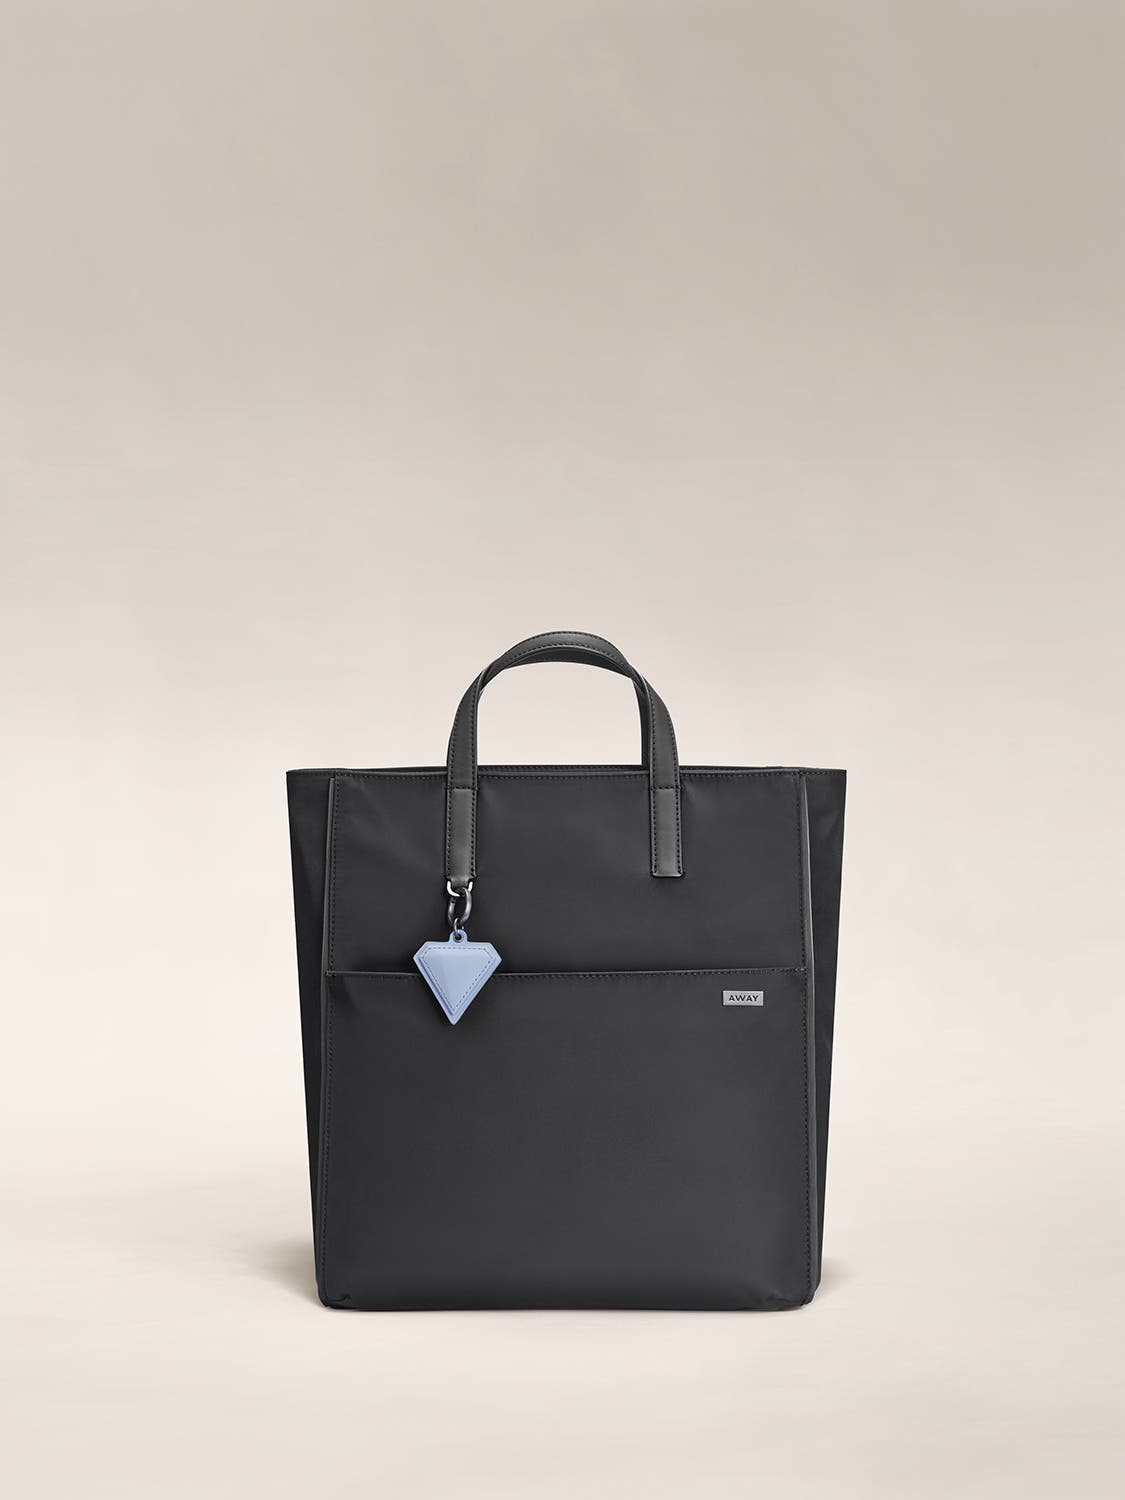 A black shoulder bag with a front zip pocket, raised leather handles and a blue charm hanging on one end.